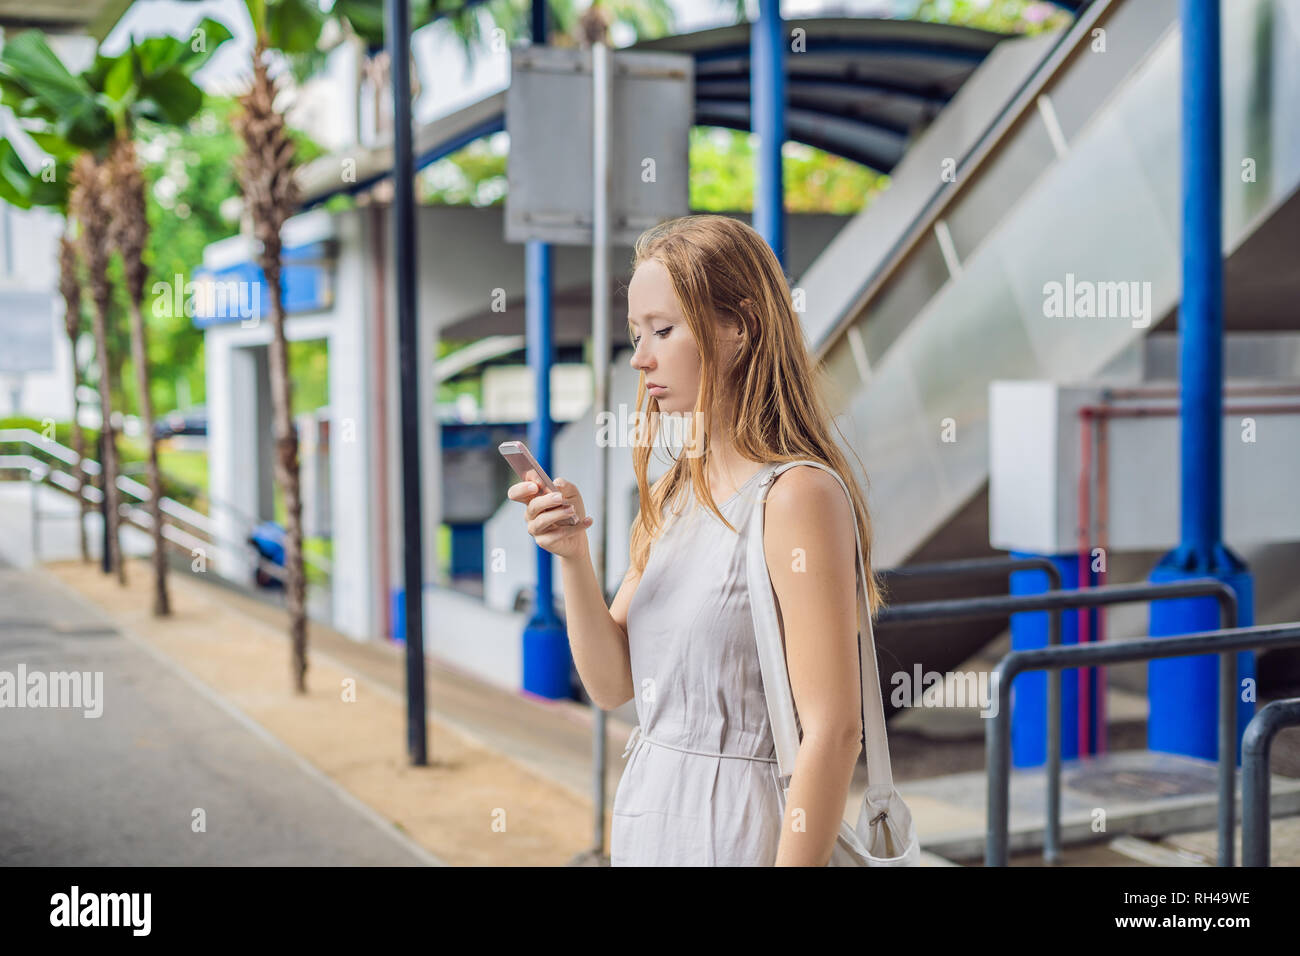 Woman using phone app for taxi ride hailing service or using phone app to find directions and guide during travel. Girl tourist on street - Stock Image